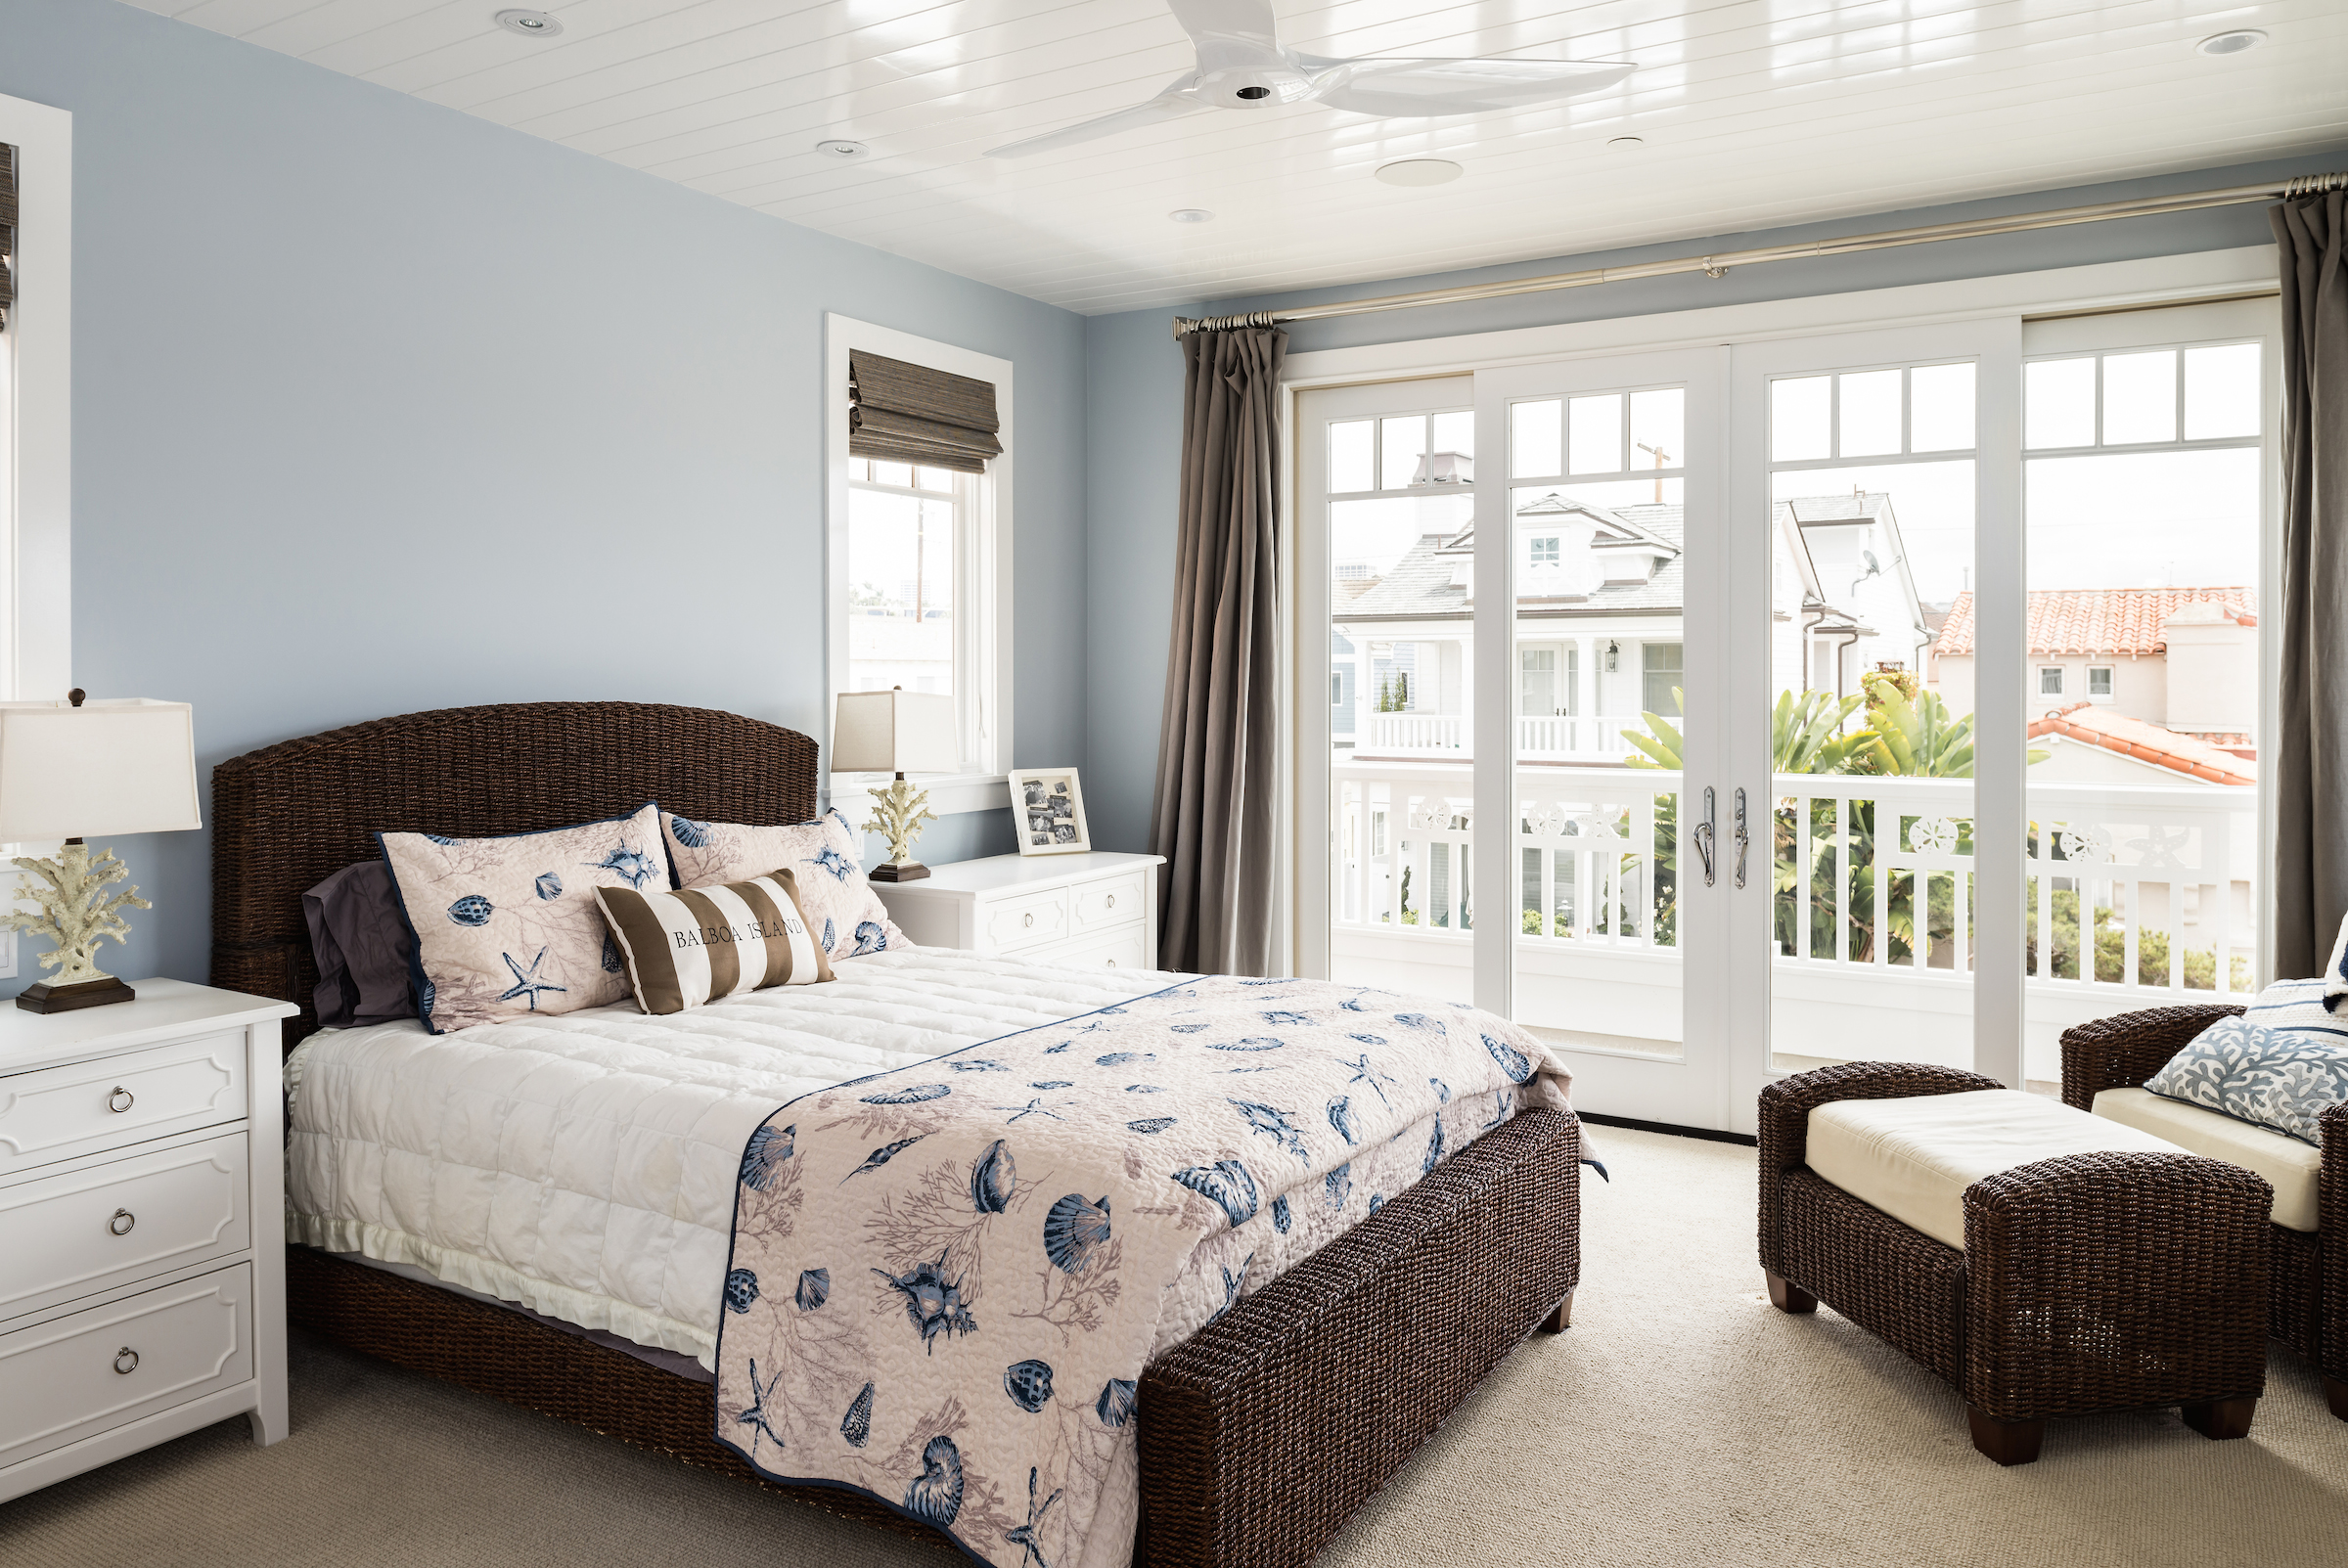 Newport-Beach-Home-Master-Bedroom.jpg